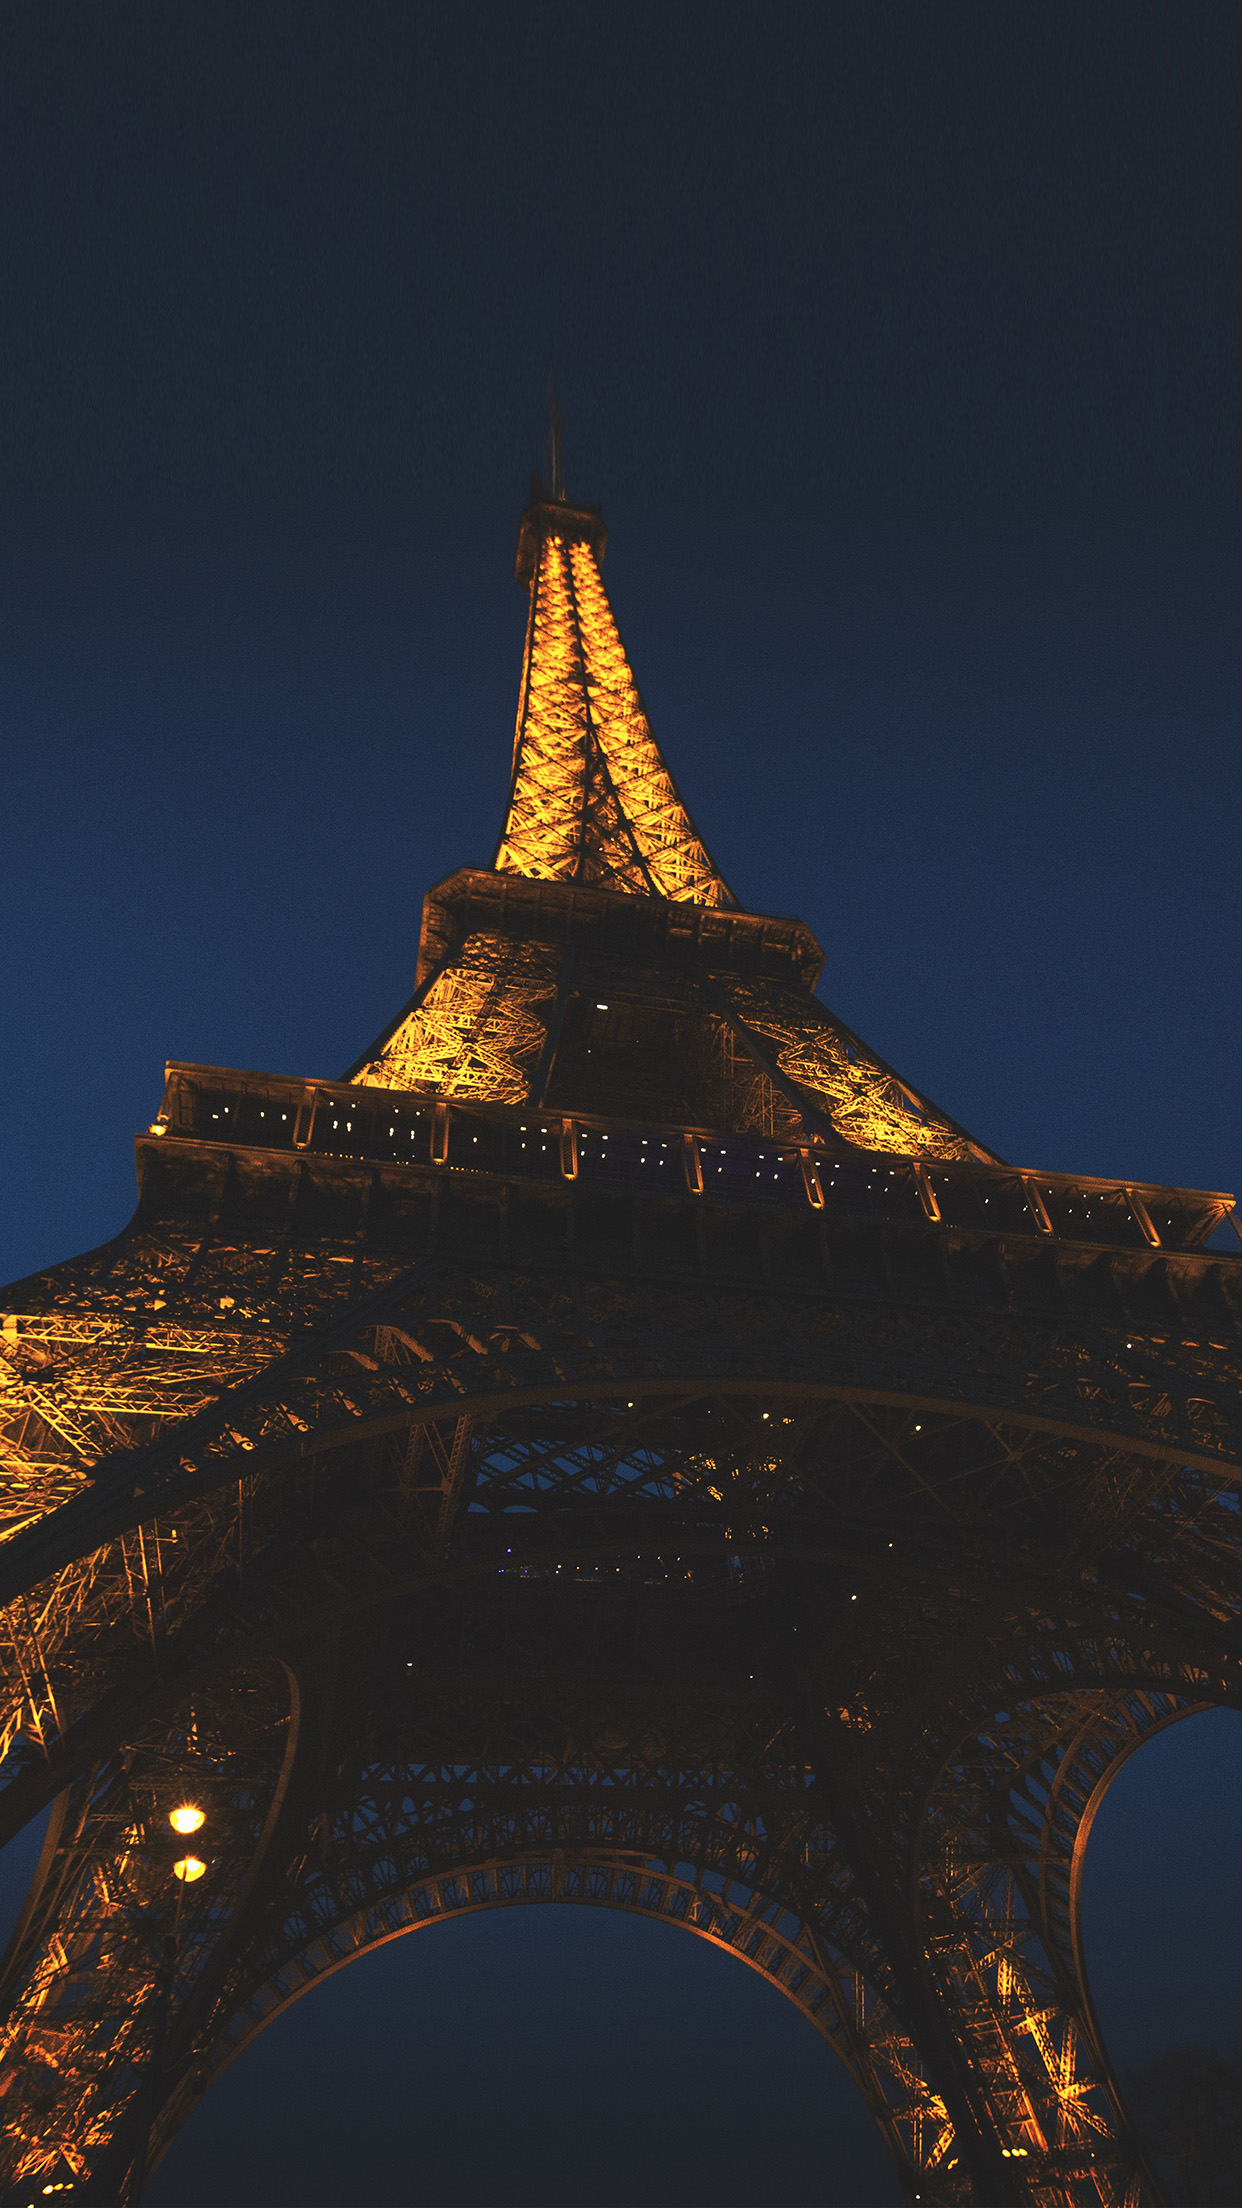 Nh37 Eiffel Tower Paris France Tour Vacation City Night Wallpaper